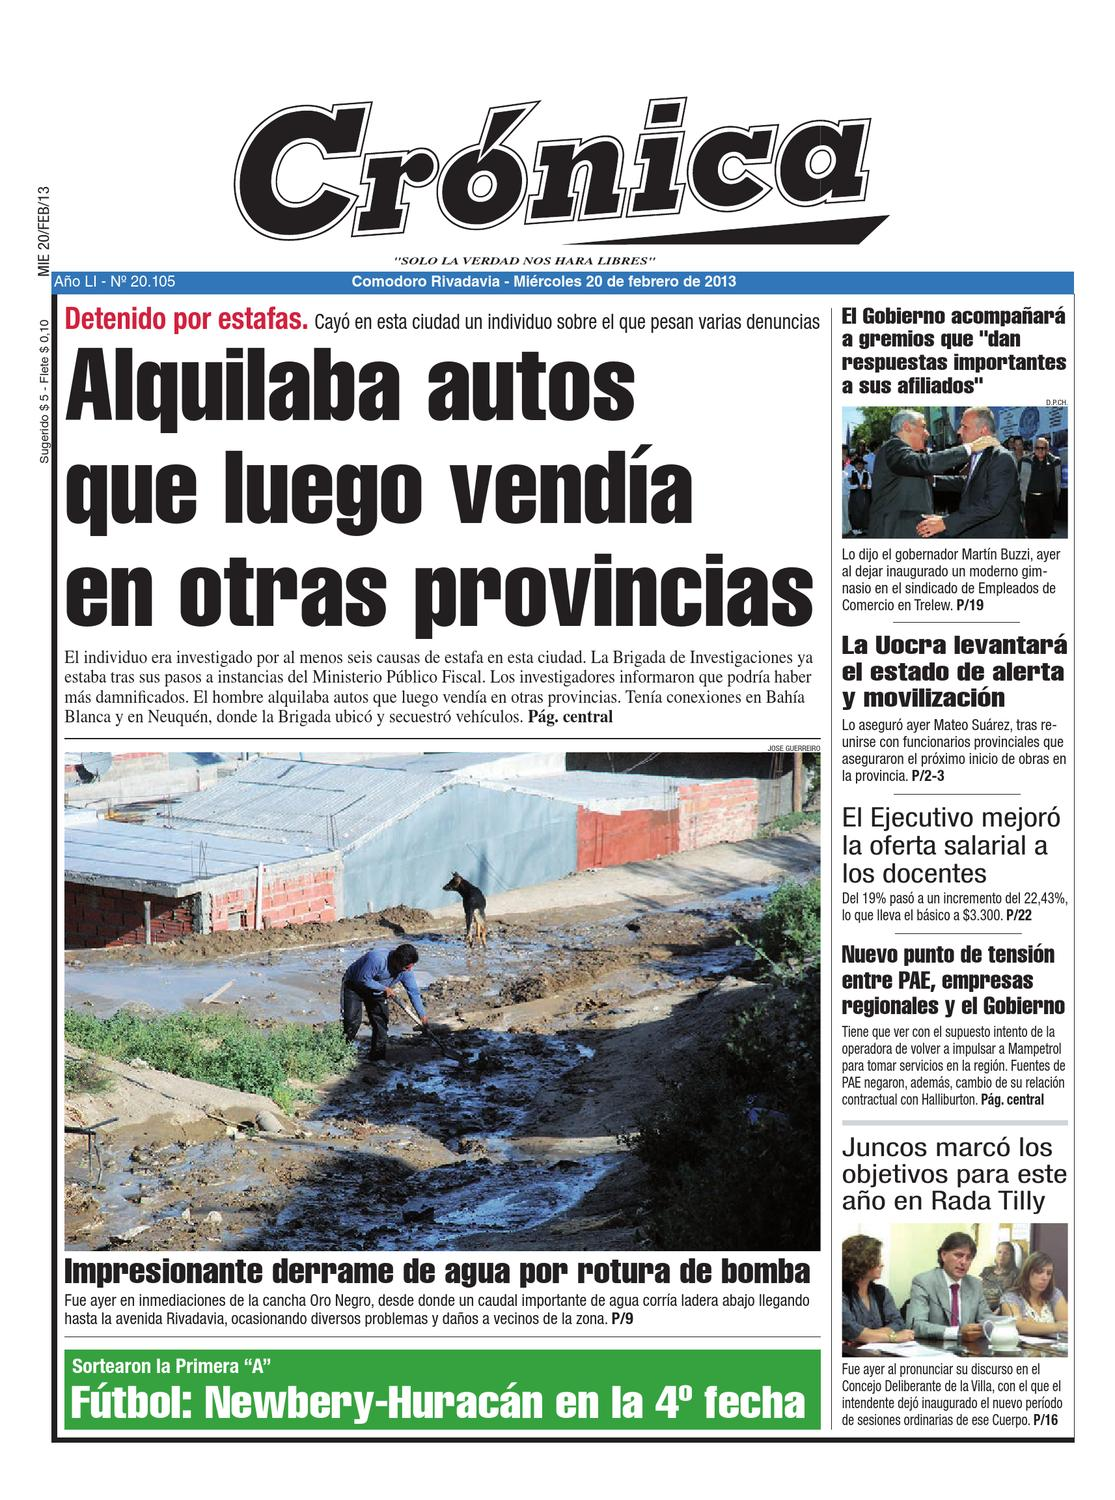 ab477f453a654dc3c2c2703d431982ba by Diario Crónica - issuu